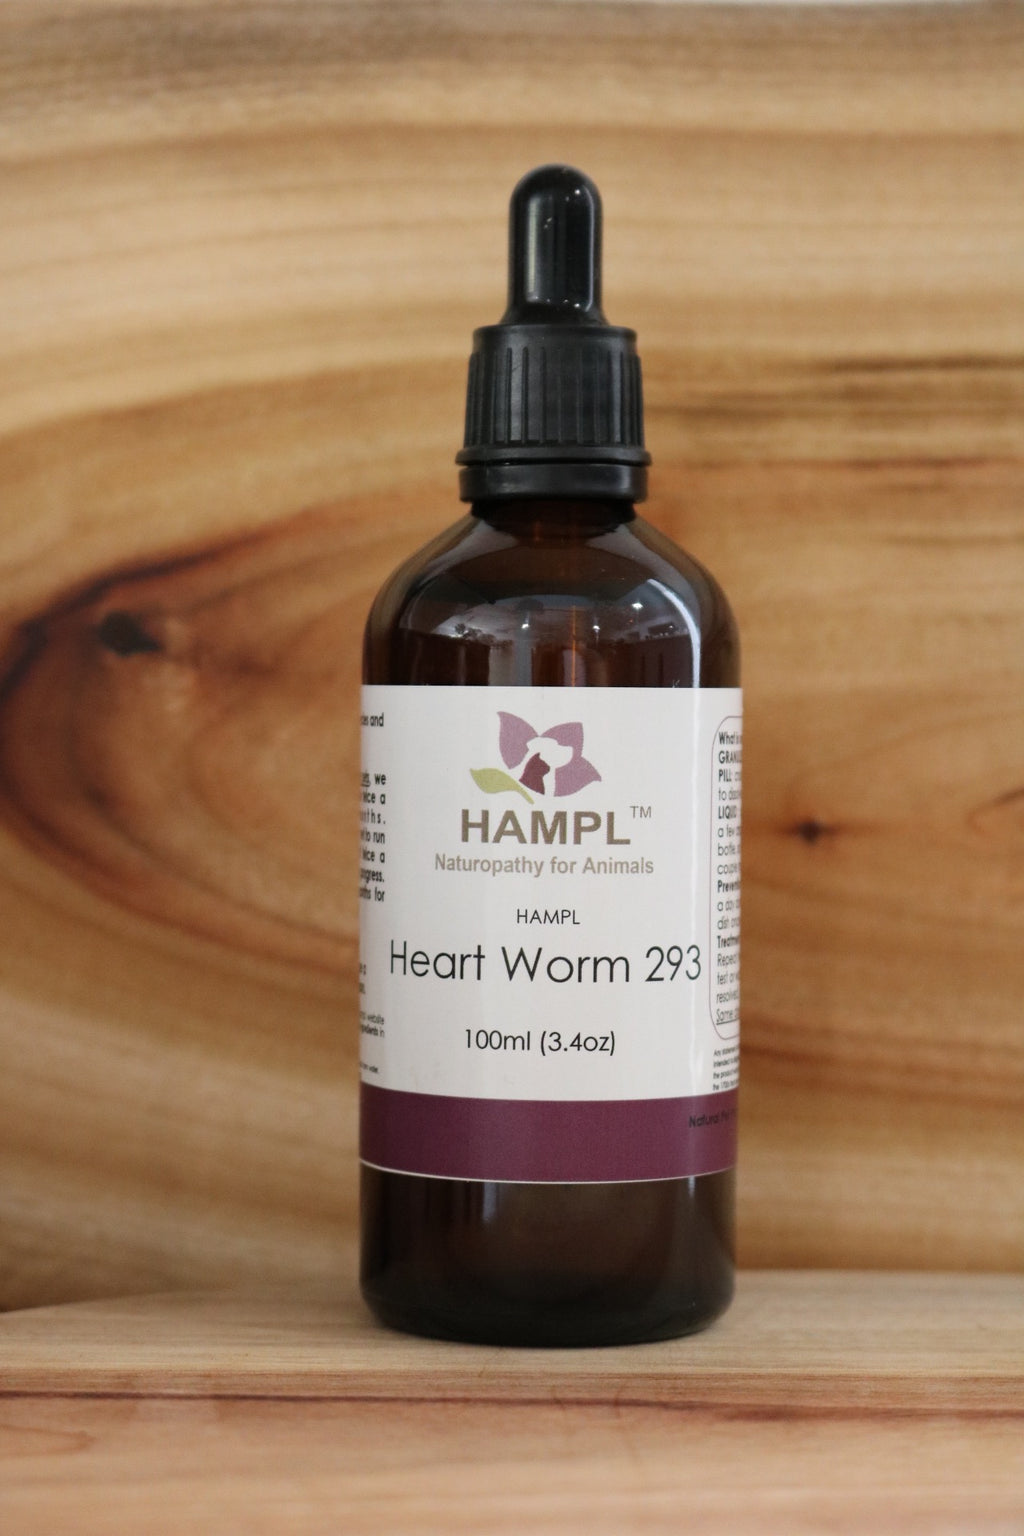 HAMPL Homeopathic Heartworm AN293